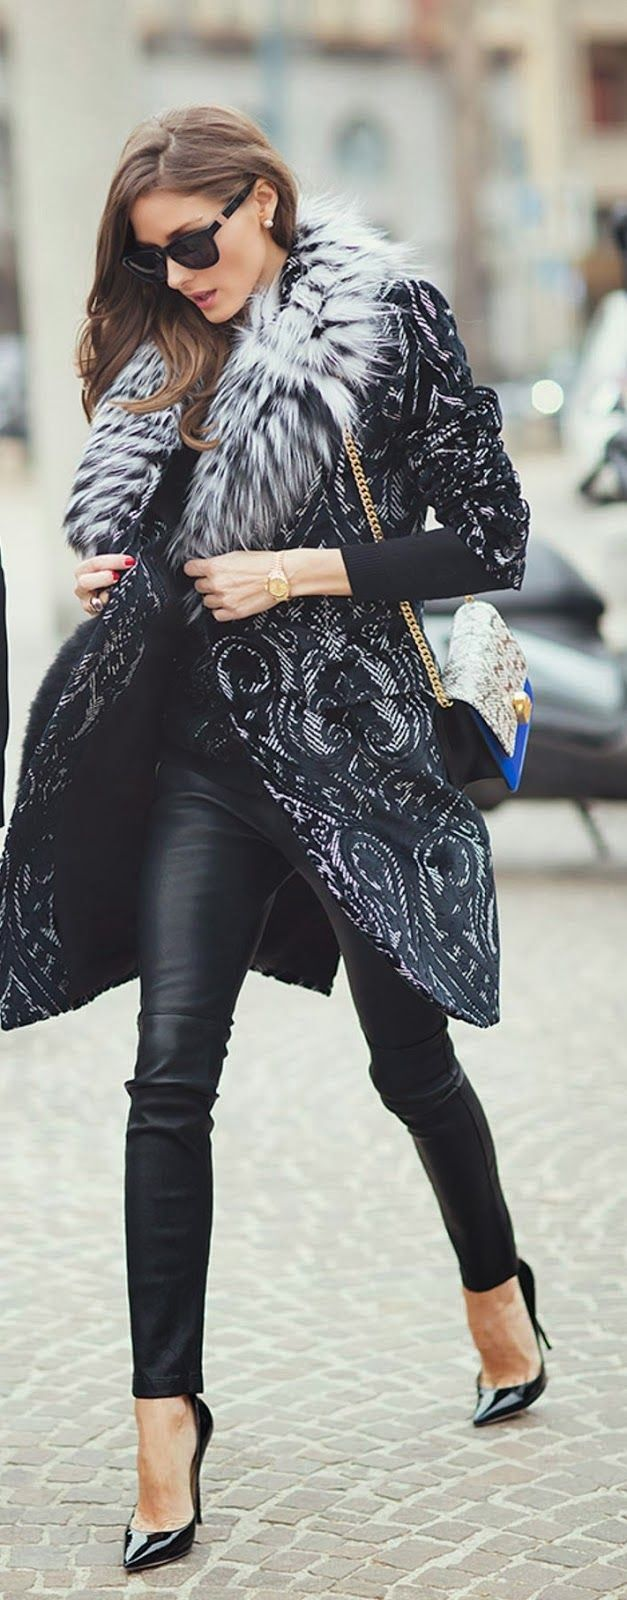 Olivia Palermo in a brocade print coat & leather pants styled with black…